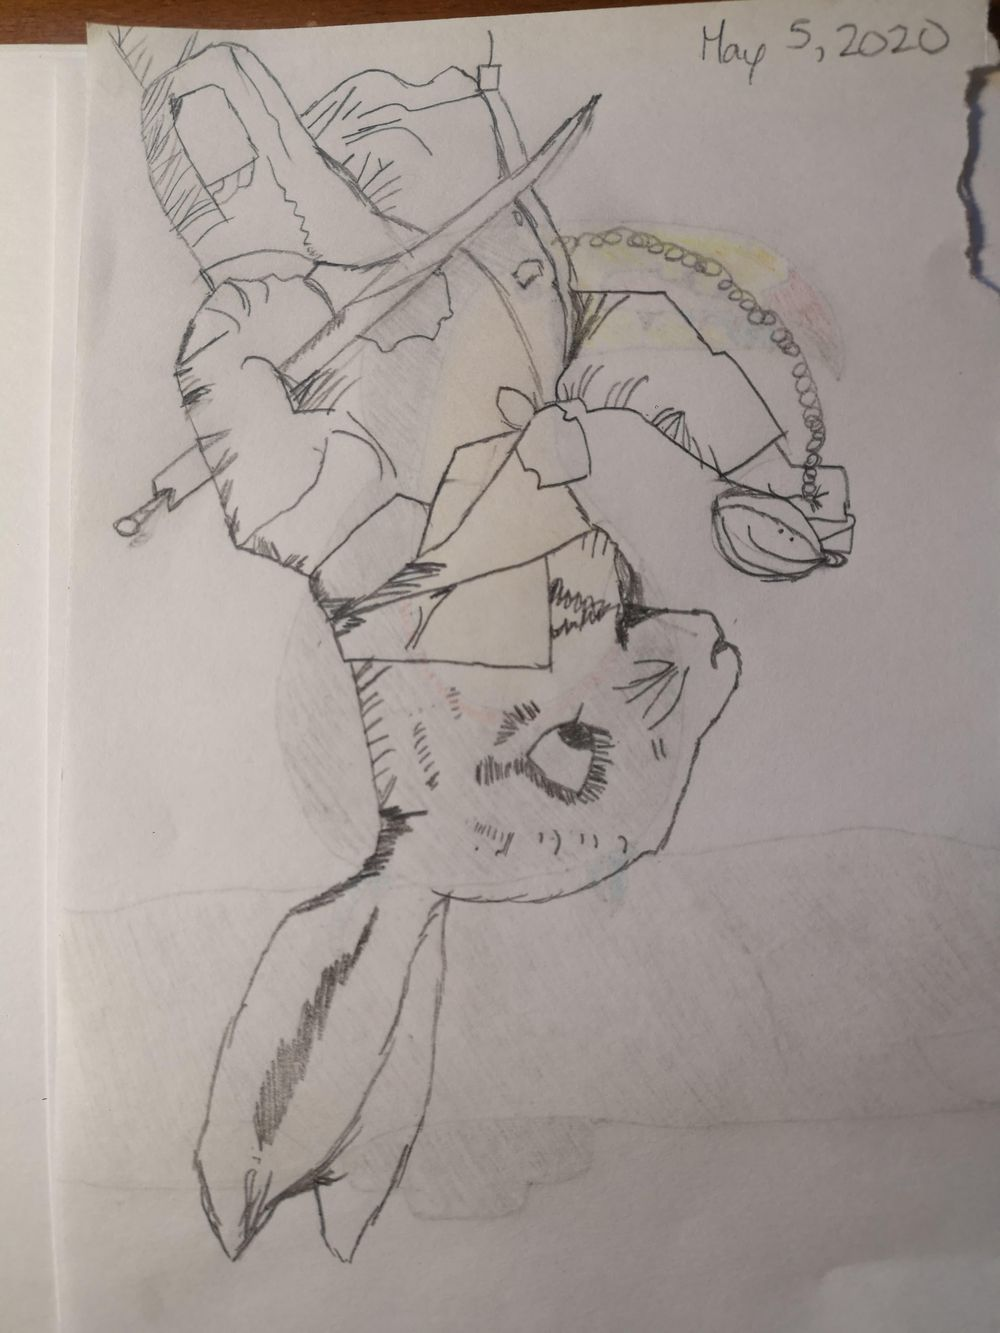 Upside Down Rabbit + Toucan! - image 1 - student project